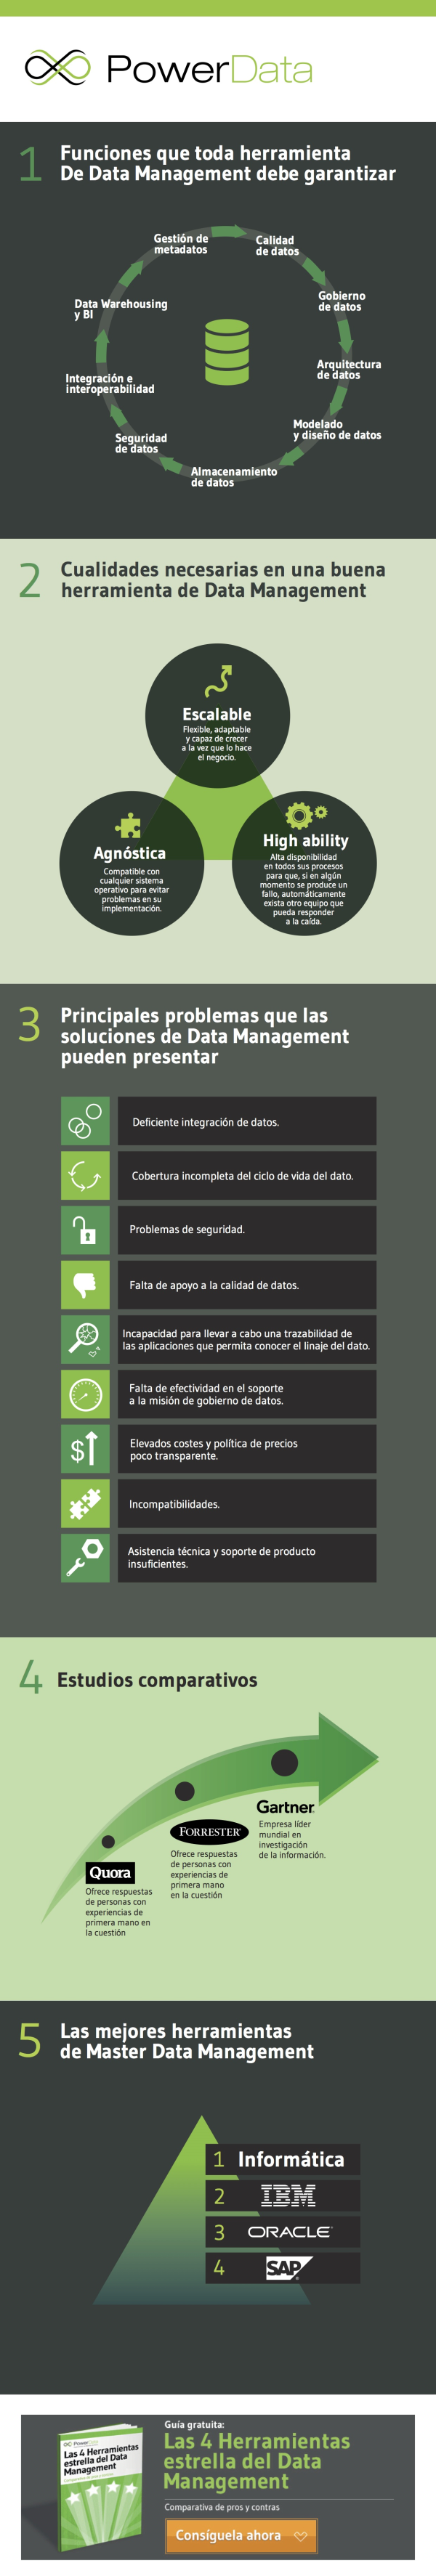 infografia   herramientas data management gestion datos resized 600